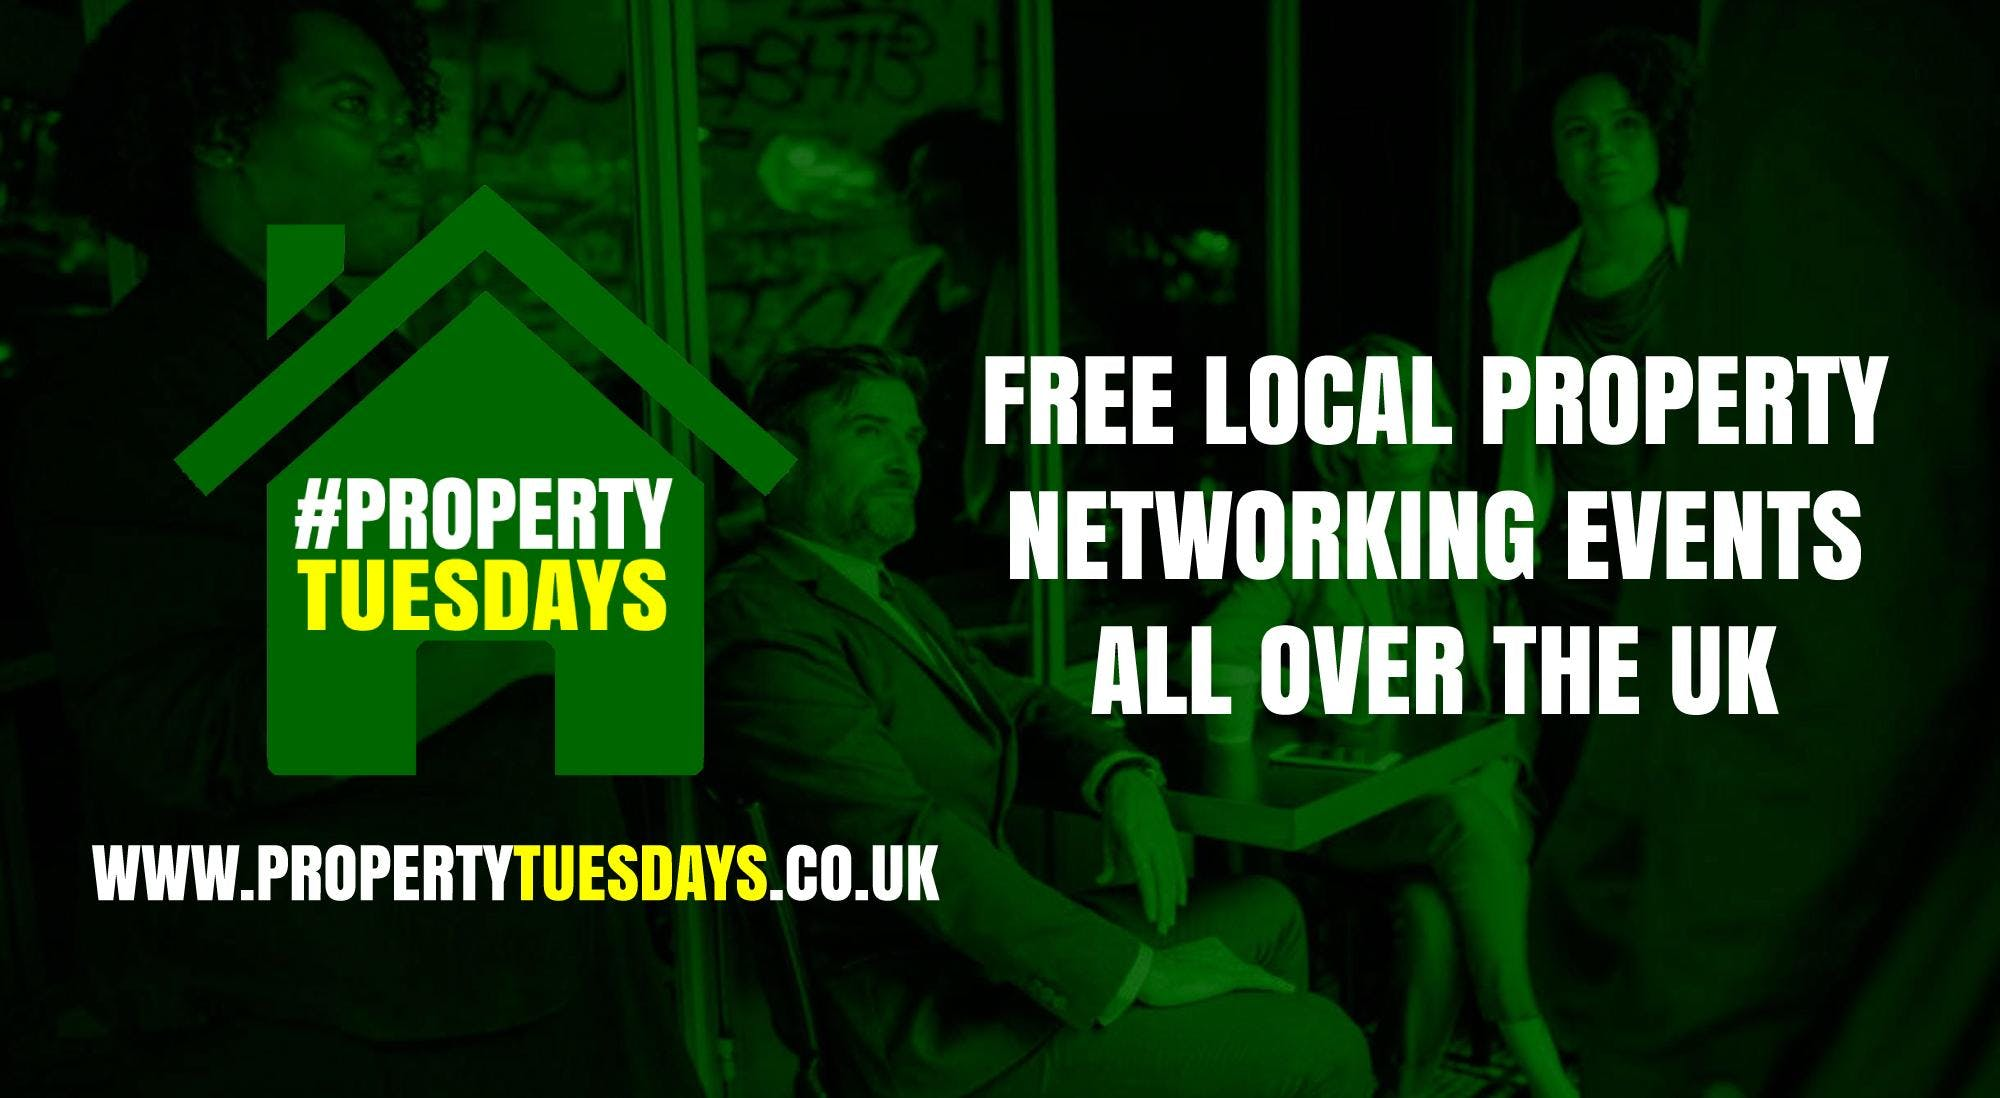 Property Tuesdays! Free property networking event in Mexborough